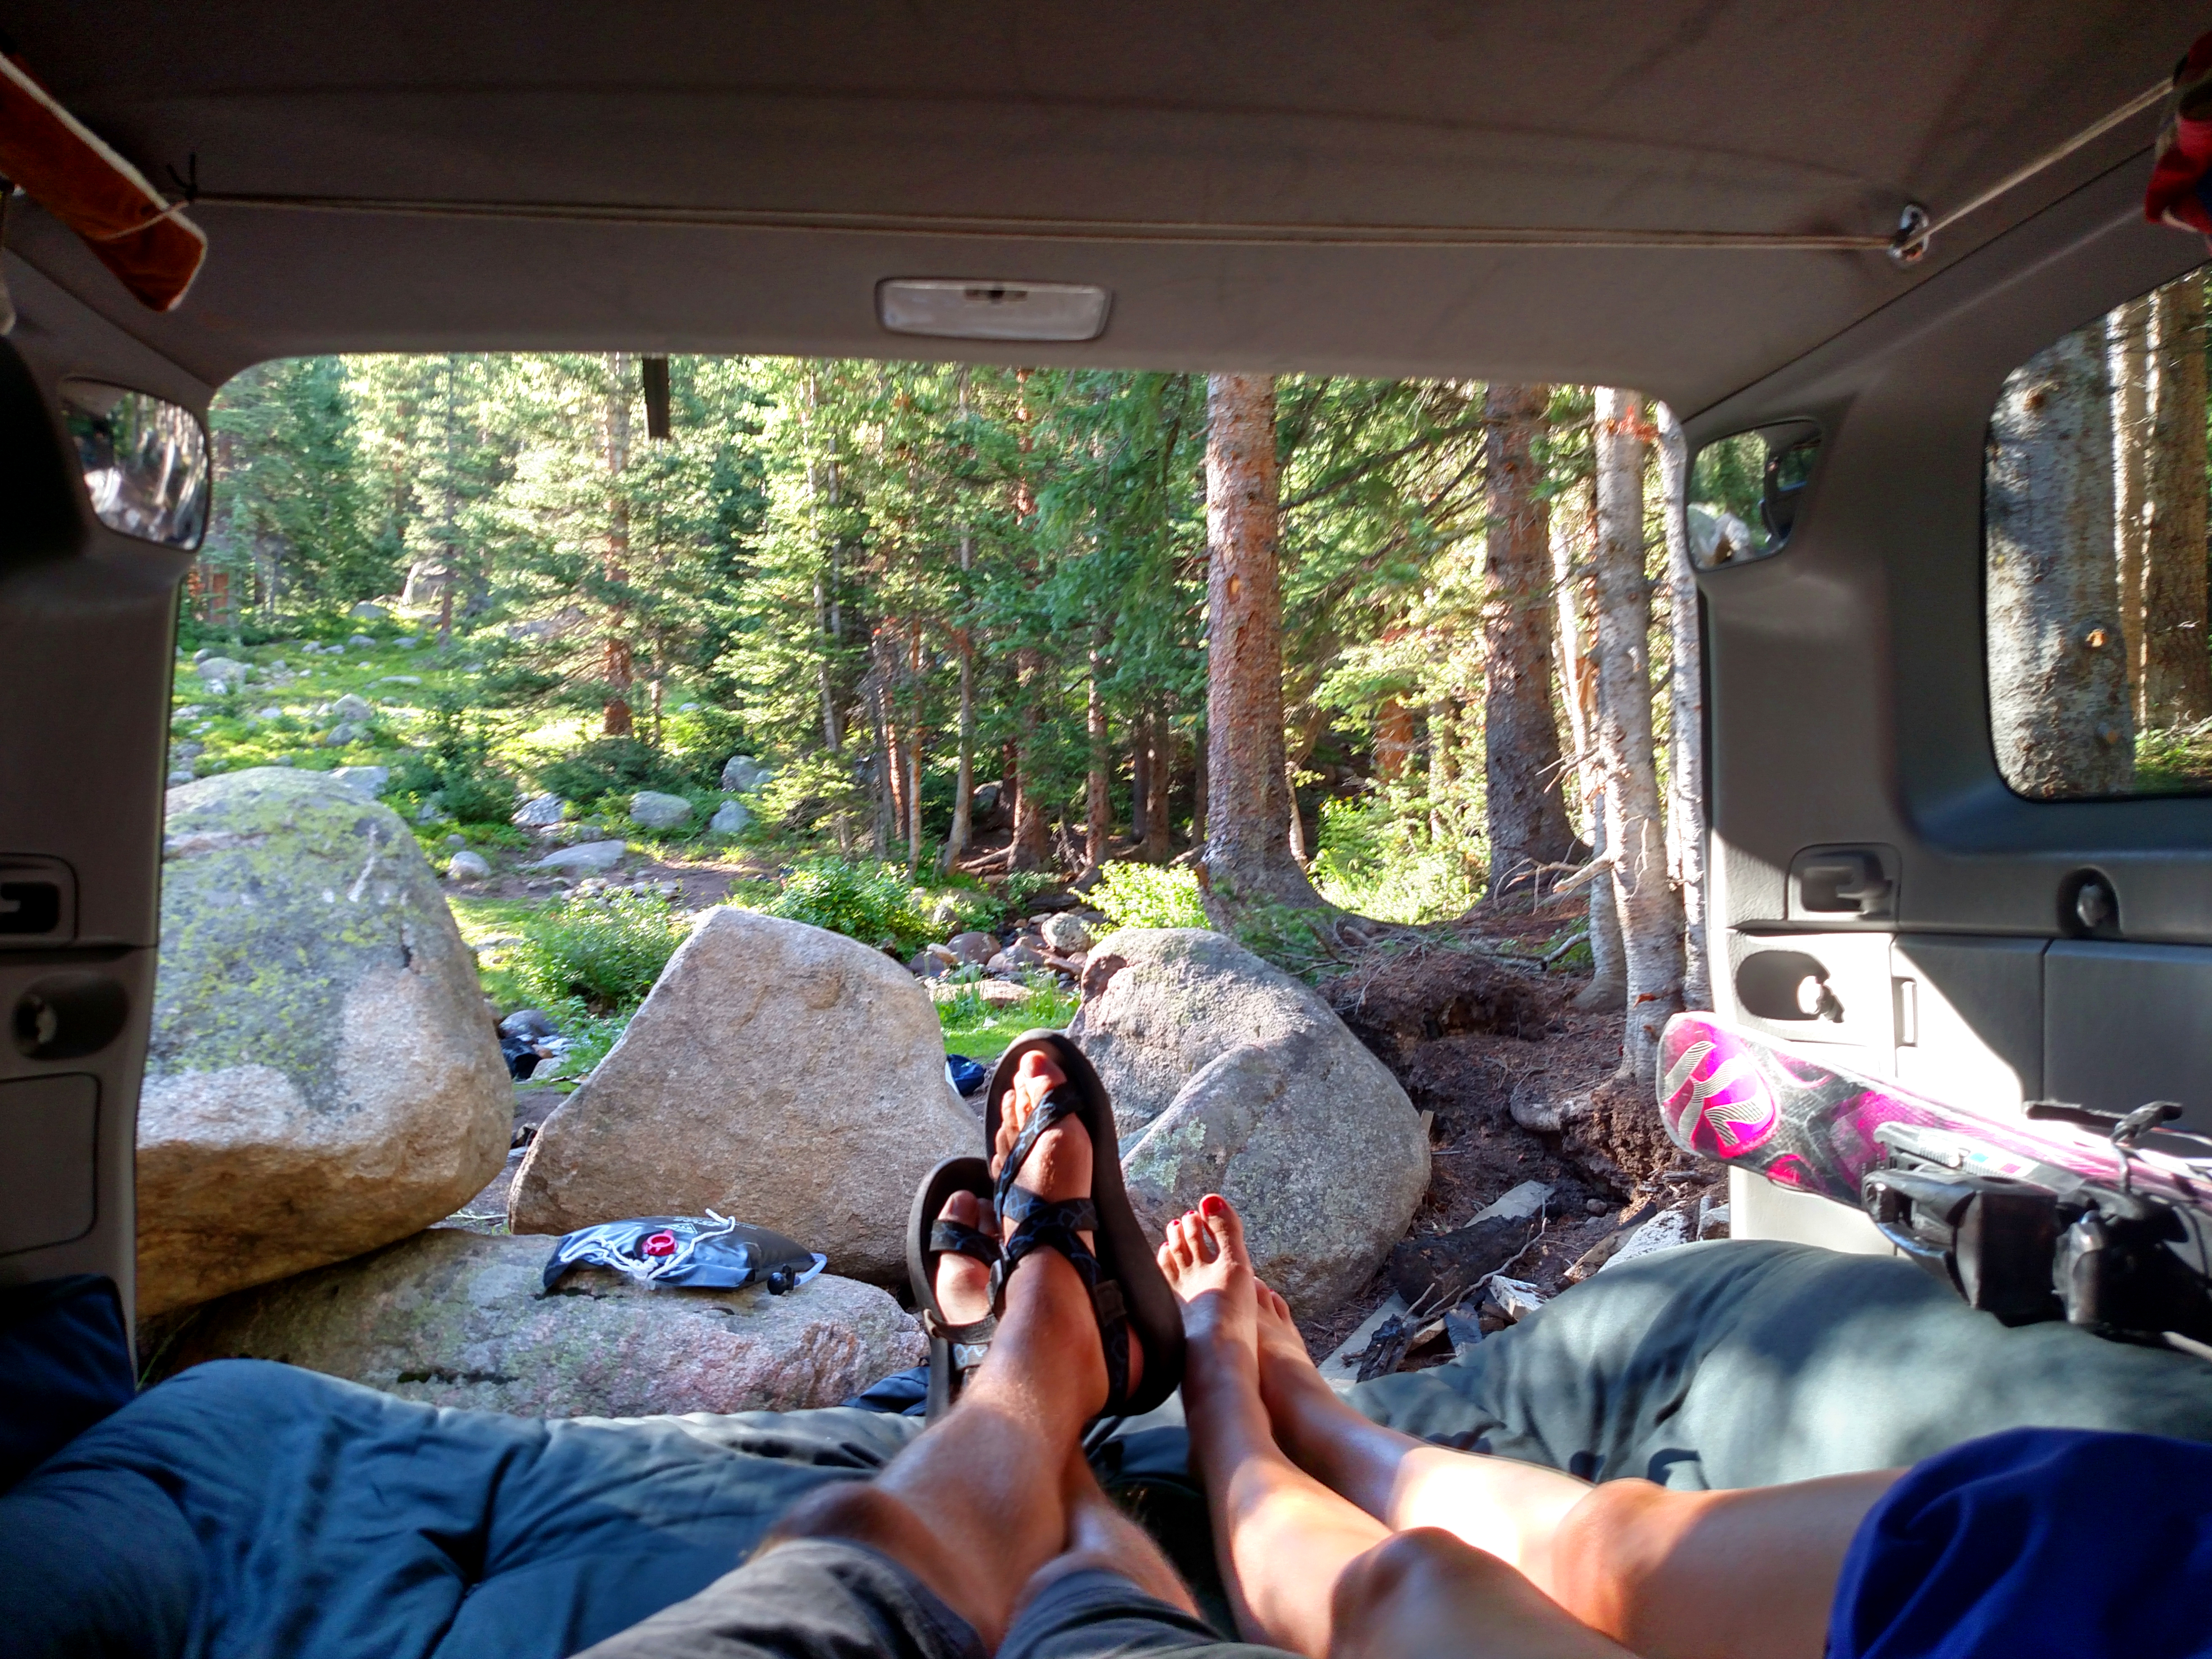 4 Runner Camping Car SUV Rv Arapaho National Forest